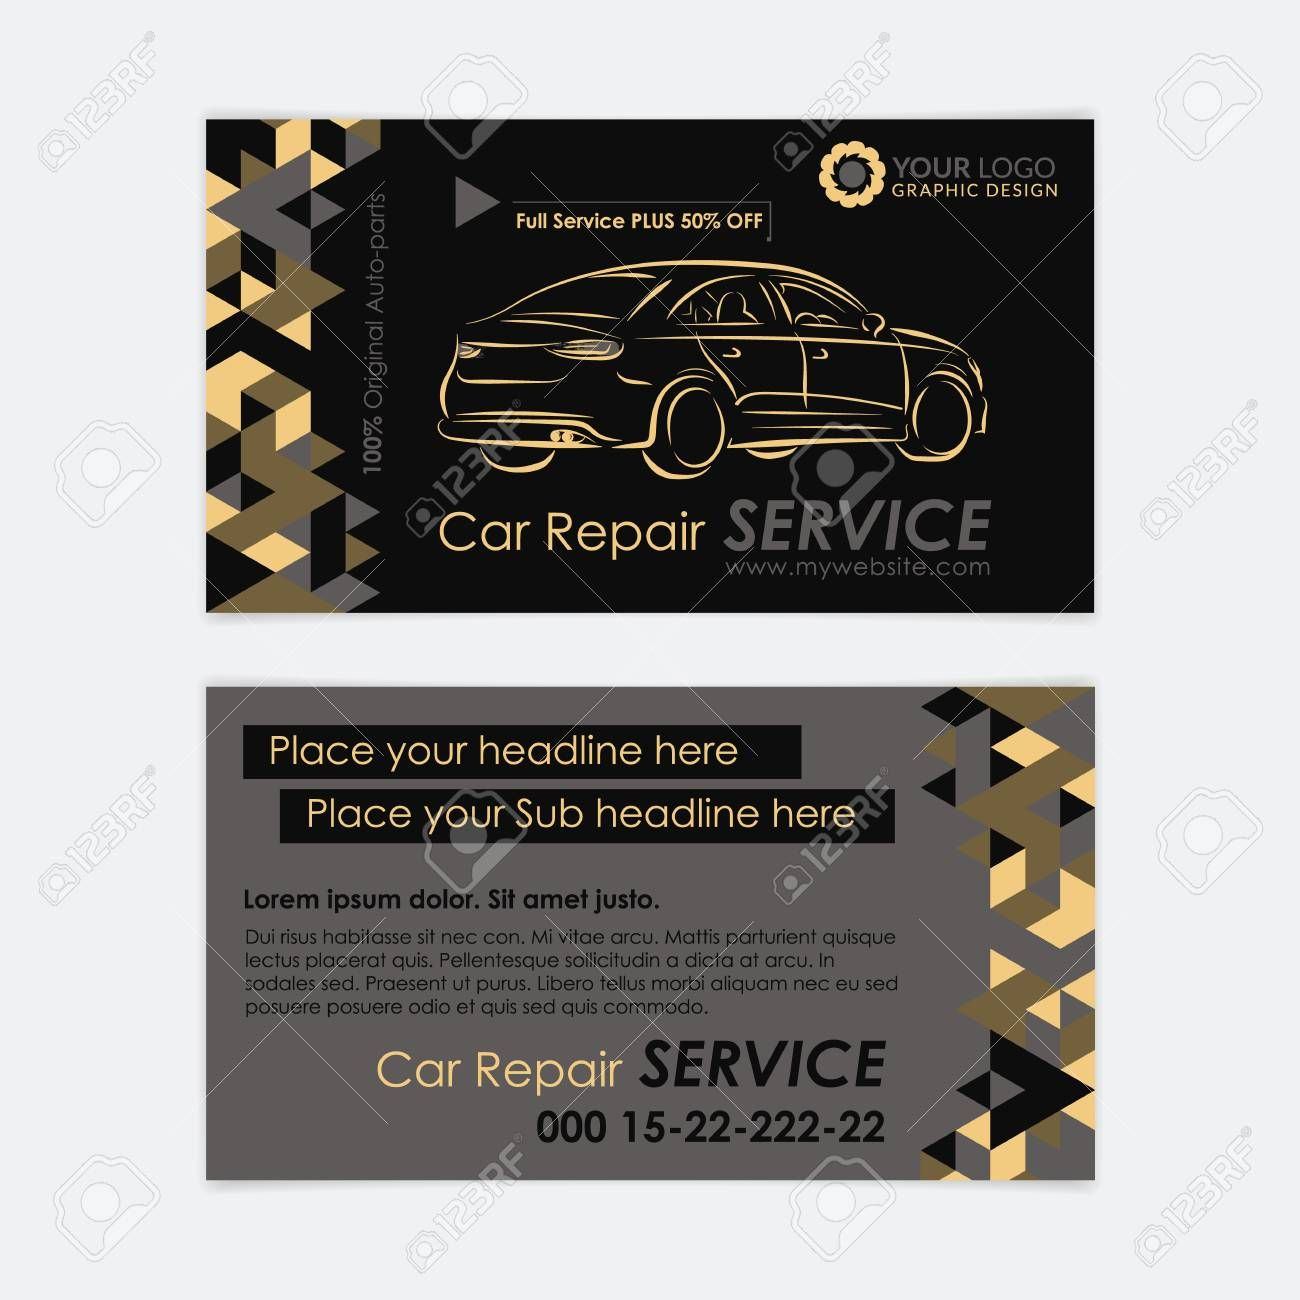 Automotive Business Card Template For Automotive Business Card Templates Sample Profes Free Business Card Templates Card Templates Business Card Template Psd